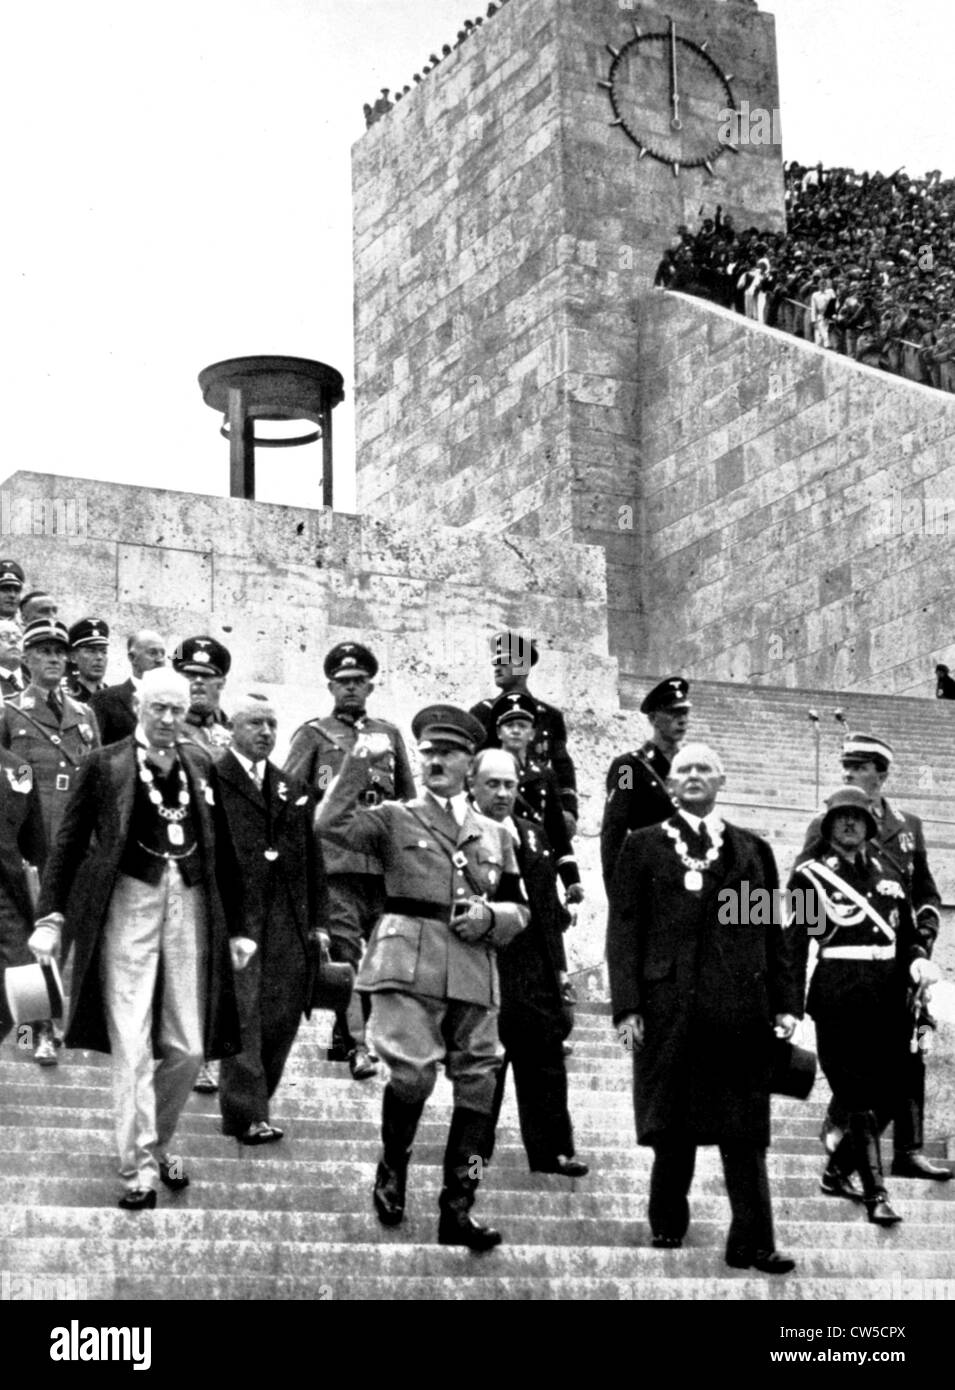 Berlin Olympic Games Chancelor Adolf Hitler is heading to stadium with high personalities Reich and Olympic authorities - Stock Image